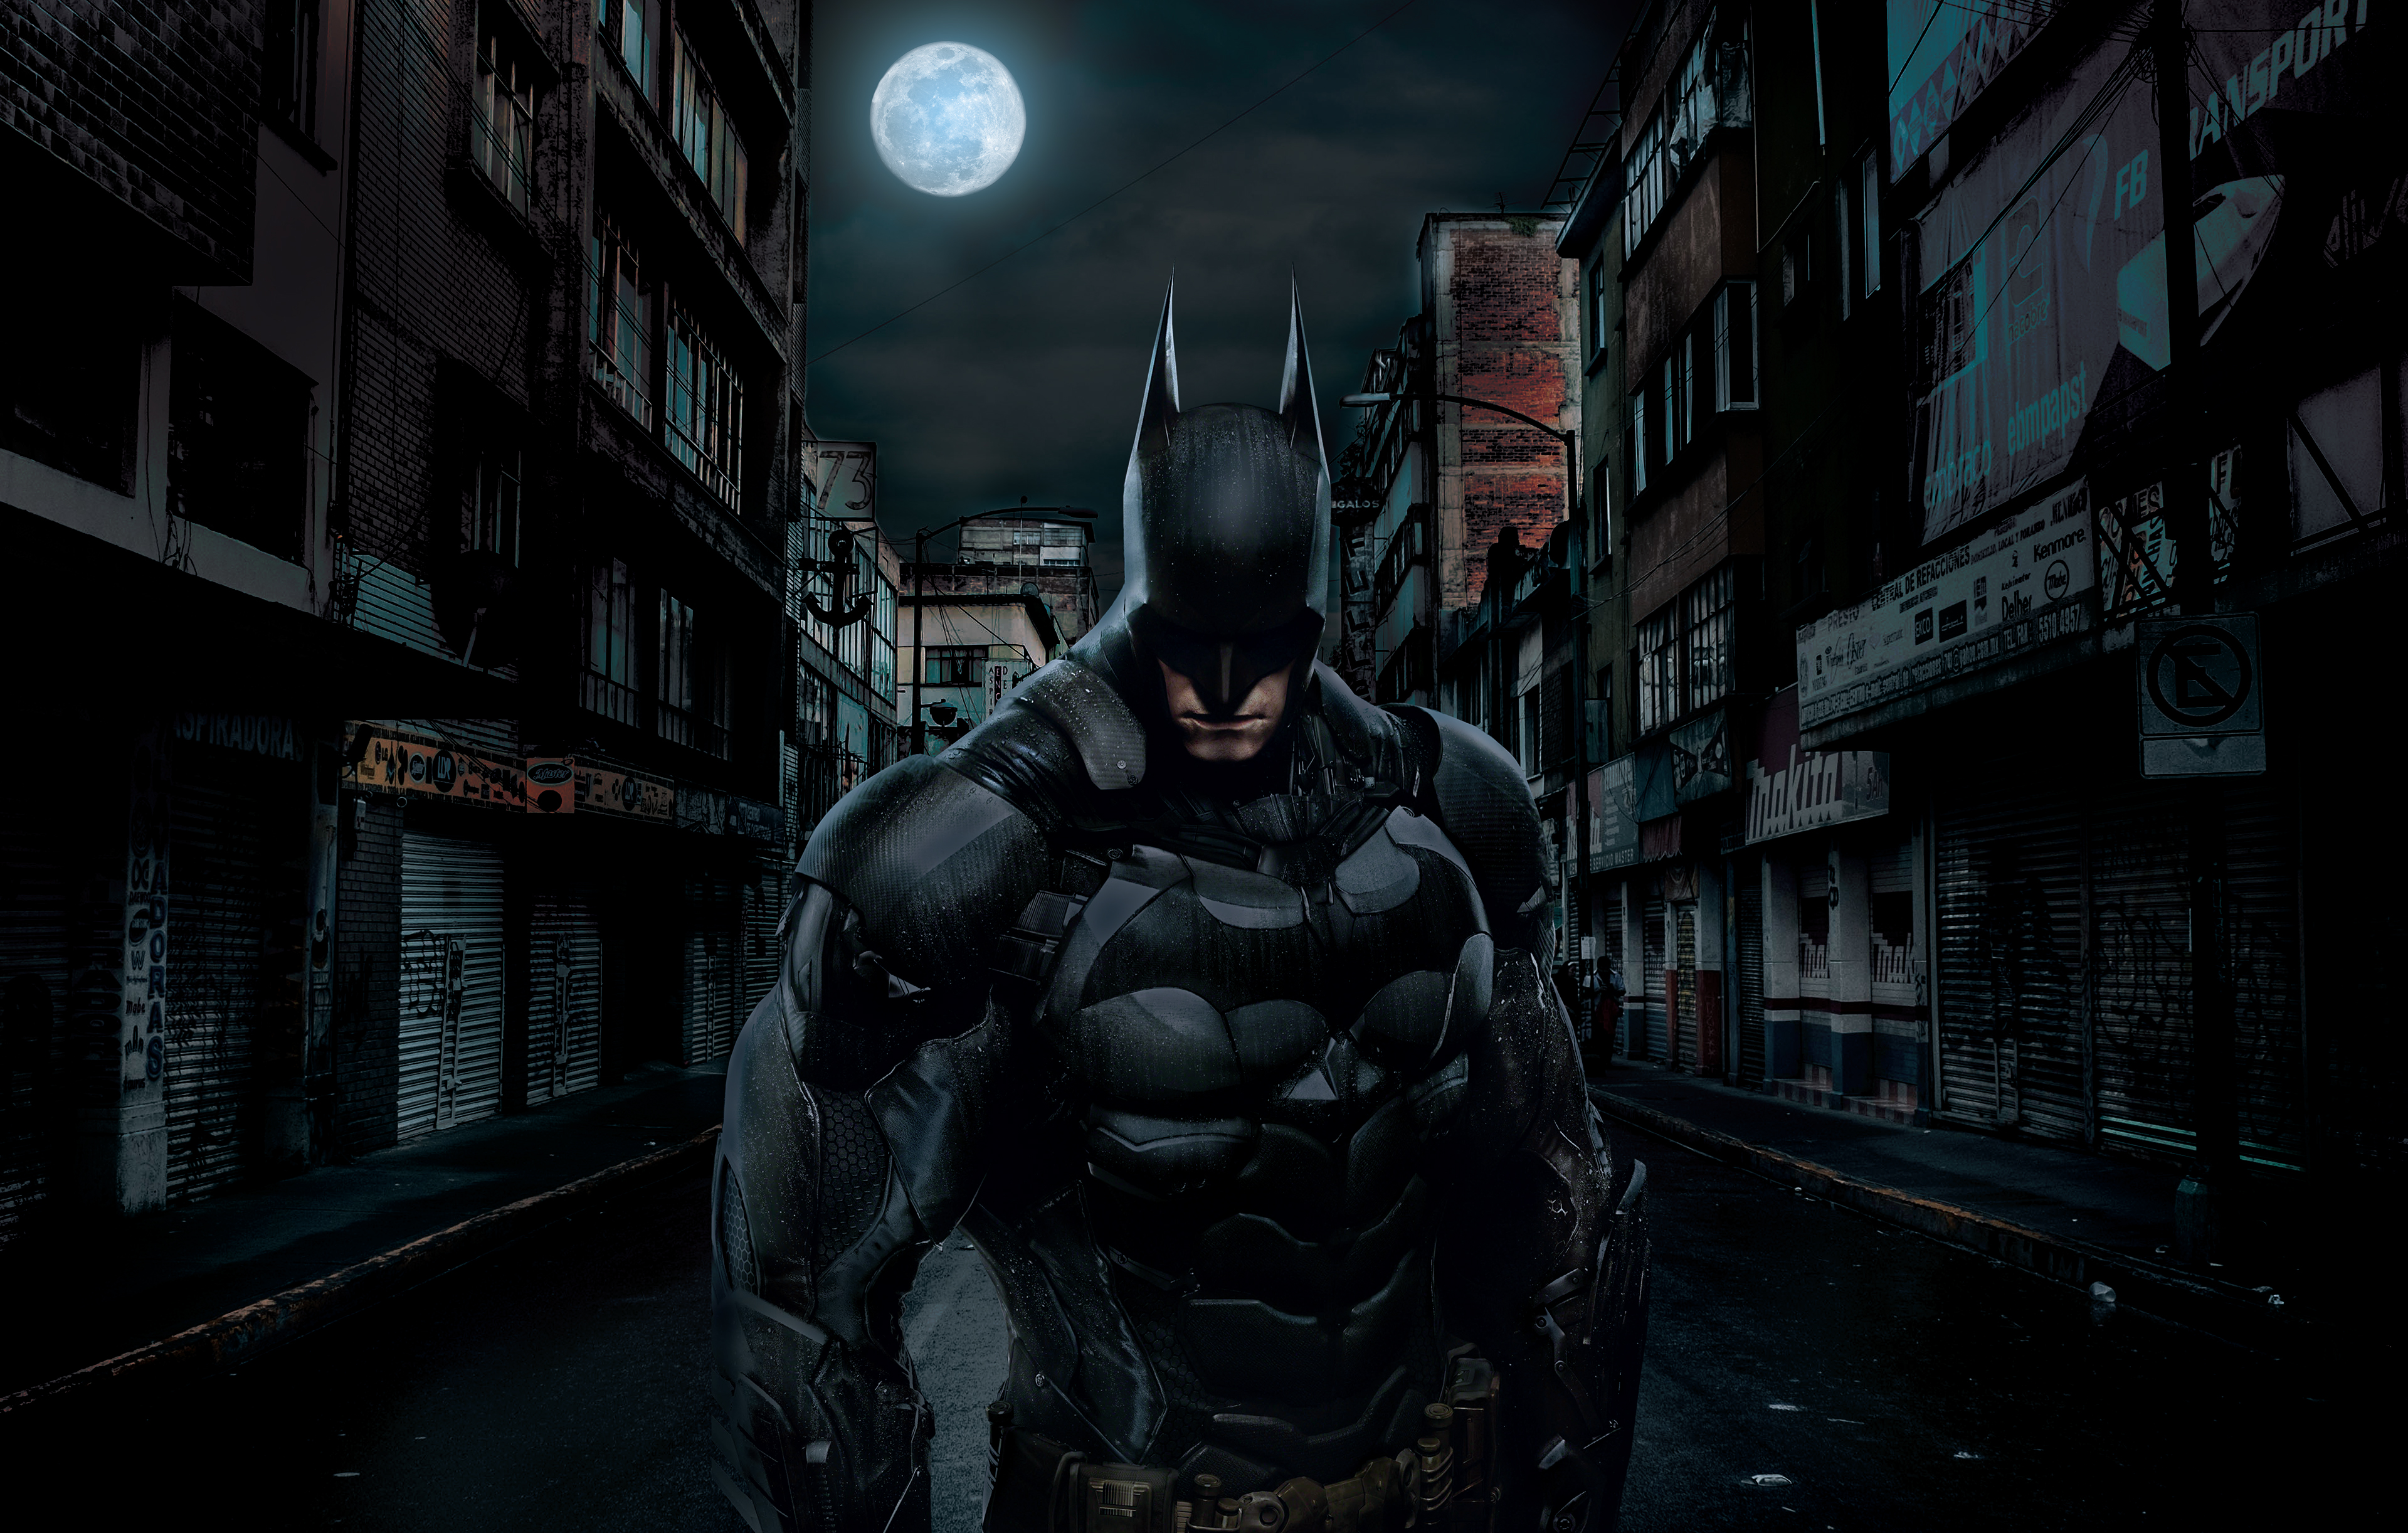 4k Batman Hd Superheroes 4k Wallpapers Images Backgrounds Photos And Pictures